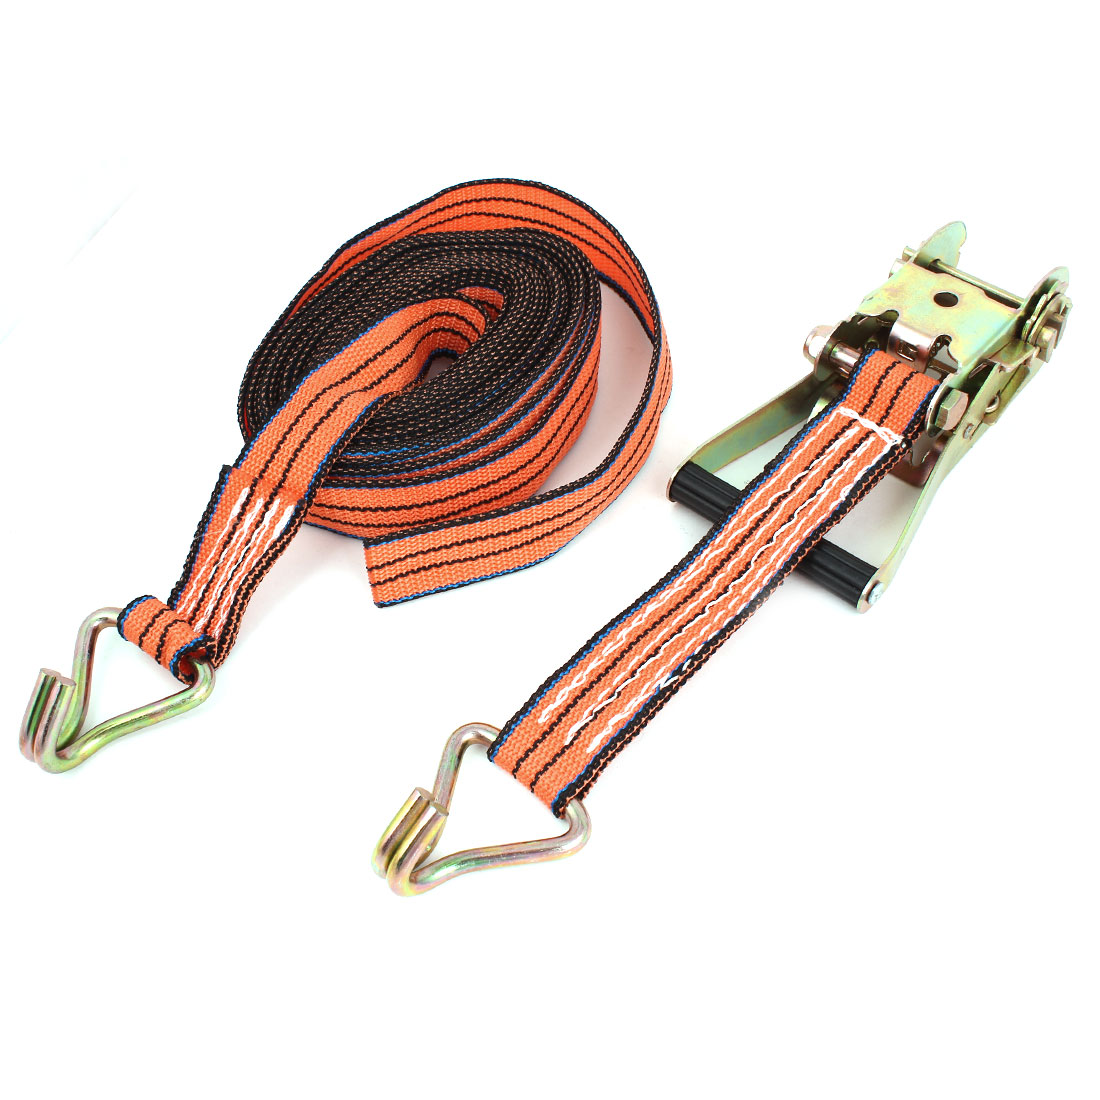 10M x 40mm Double J Hooks Ratchet Tie Down Strap Rope Orange Black